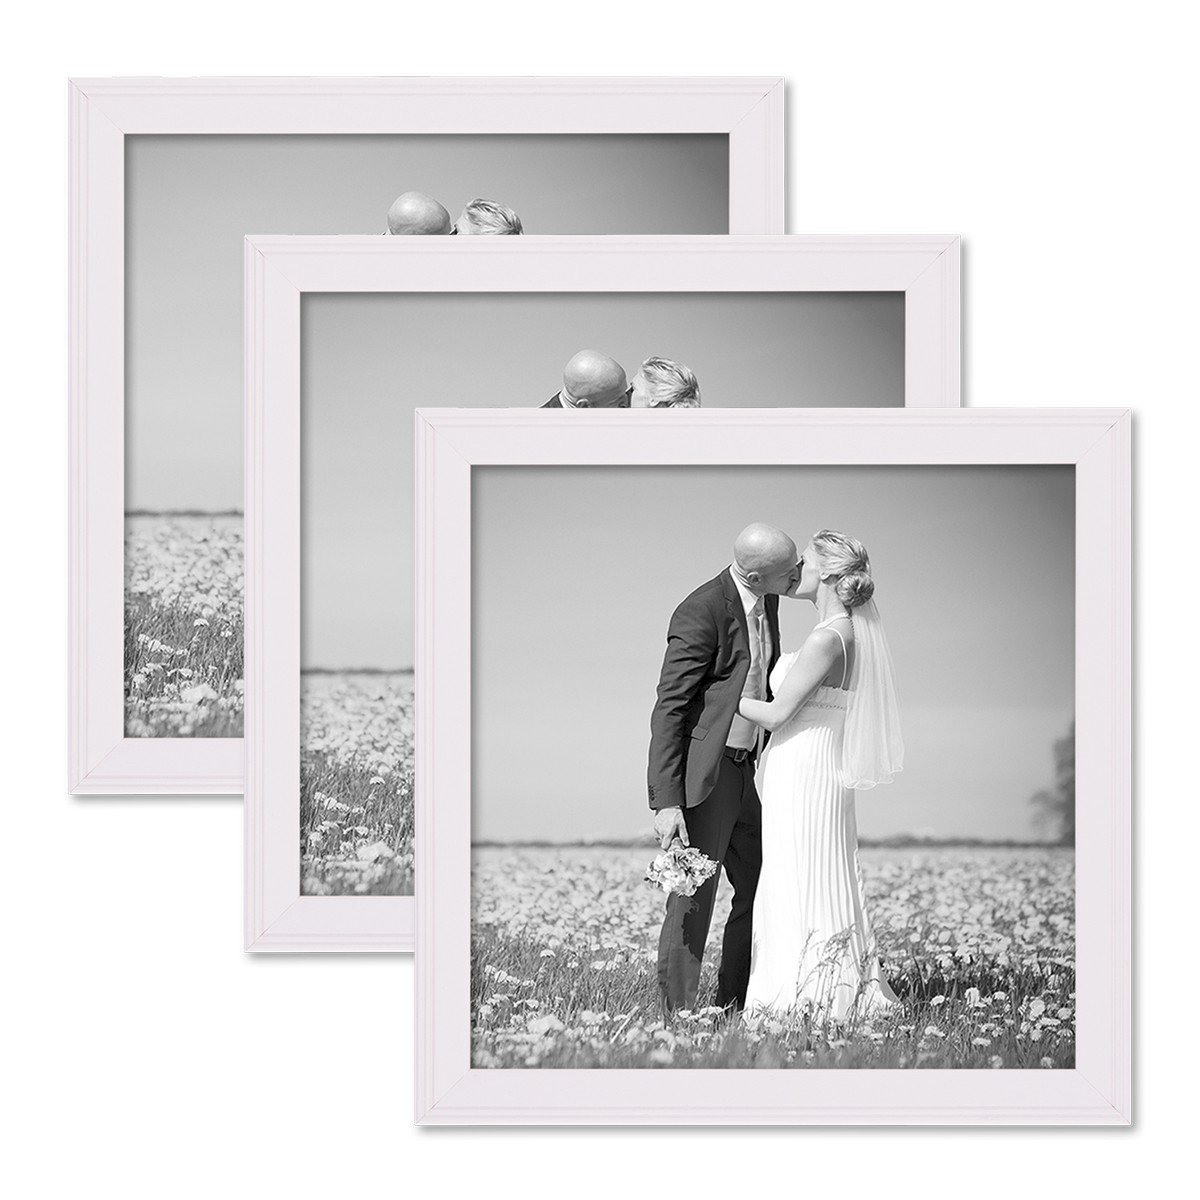 Amazon.de: PHOTOLINI Landhaus Stil Bilderrahmen Set 20x20 Cm Weiss  Massivholz 3er Set